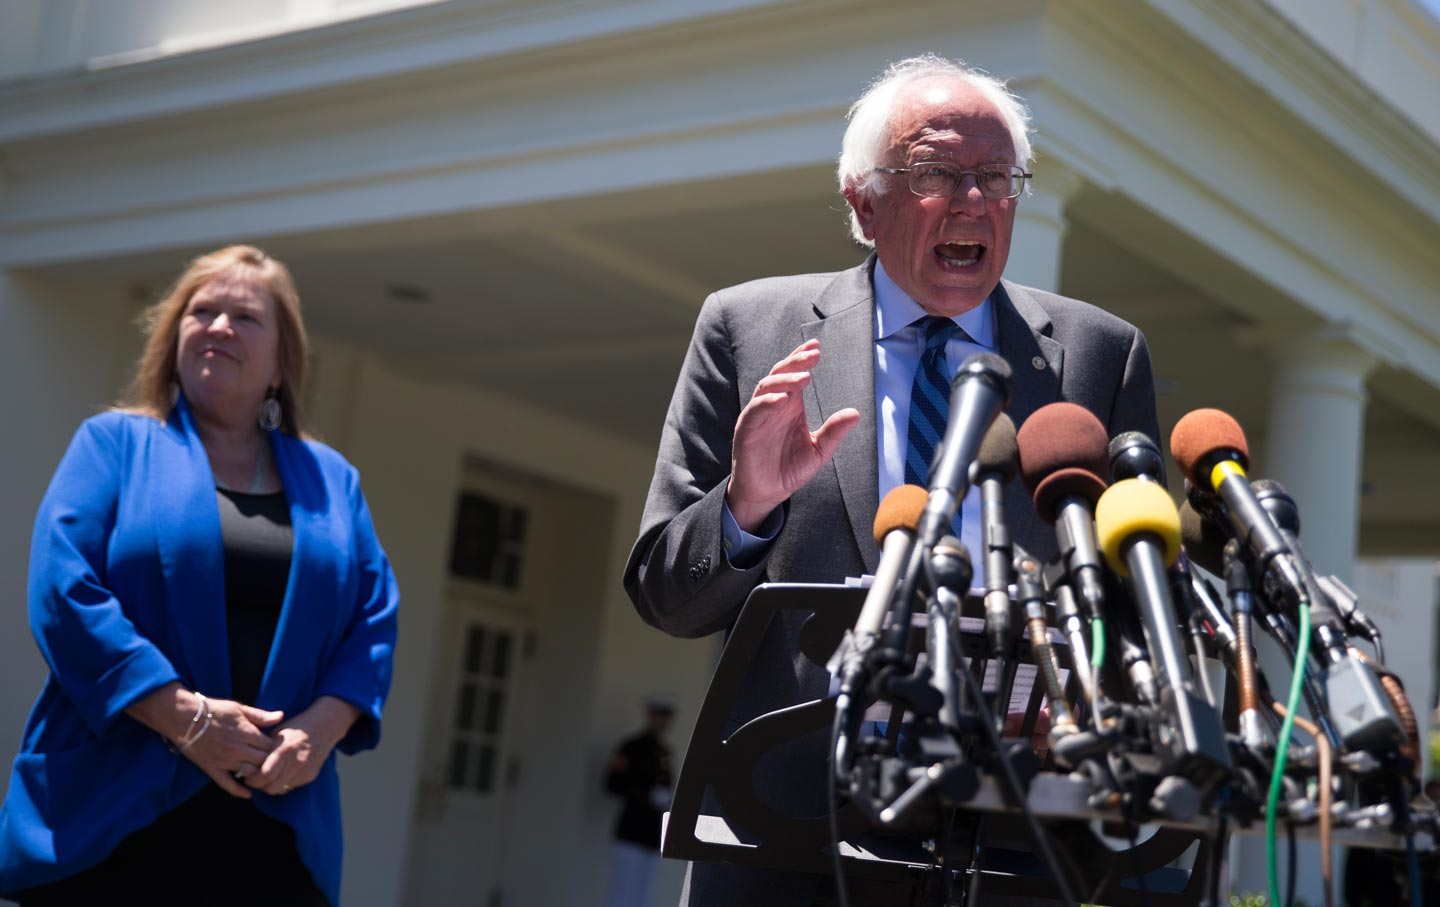 Bernie Sanders at the White House